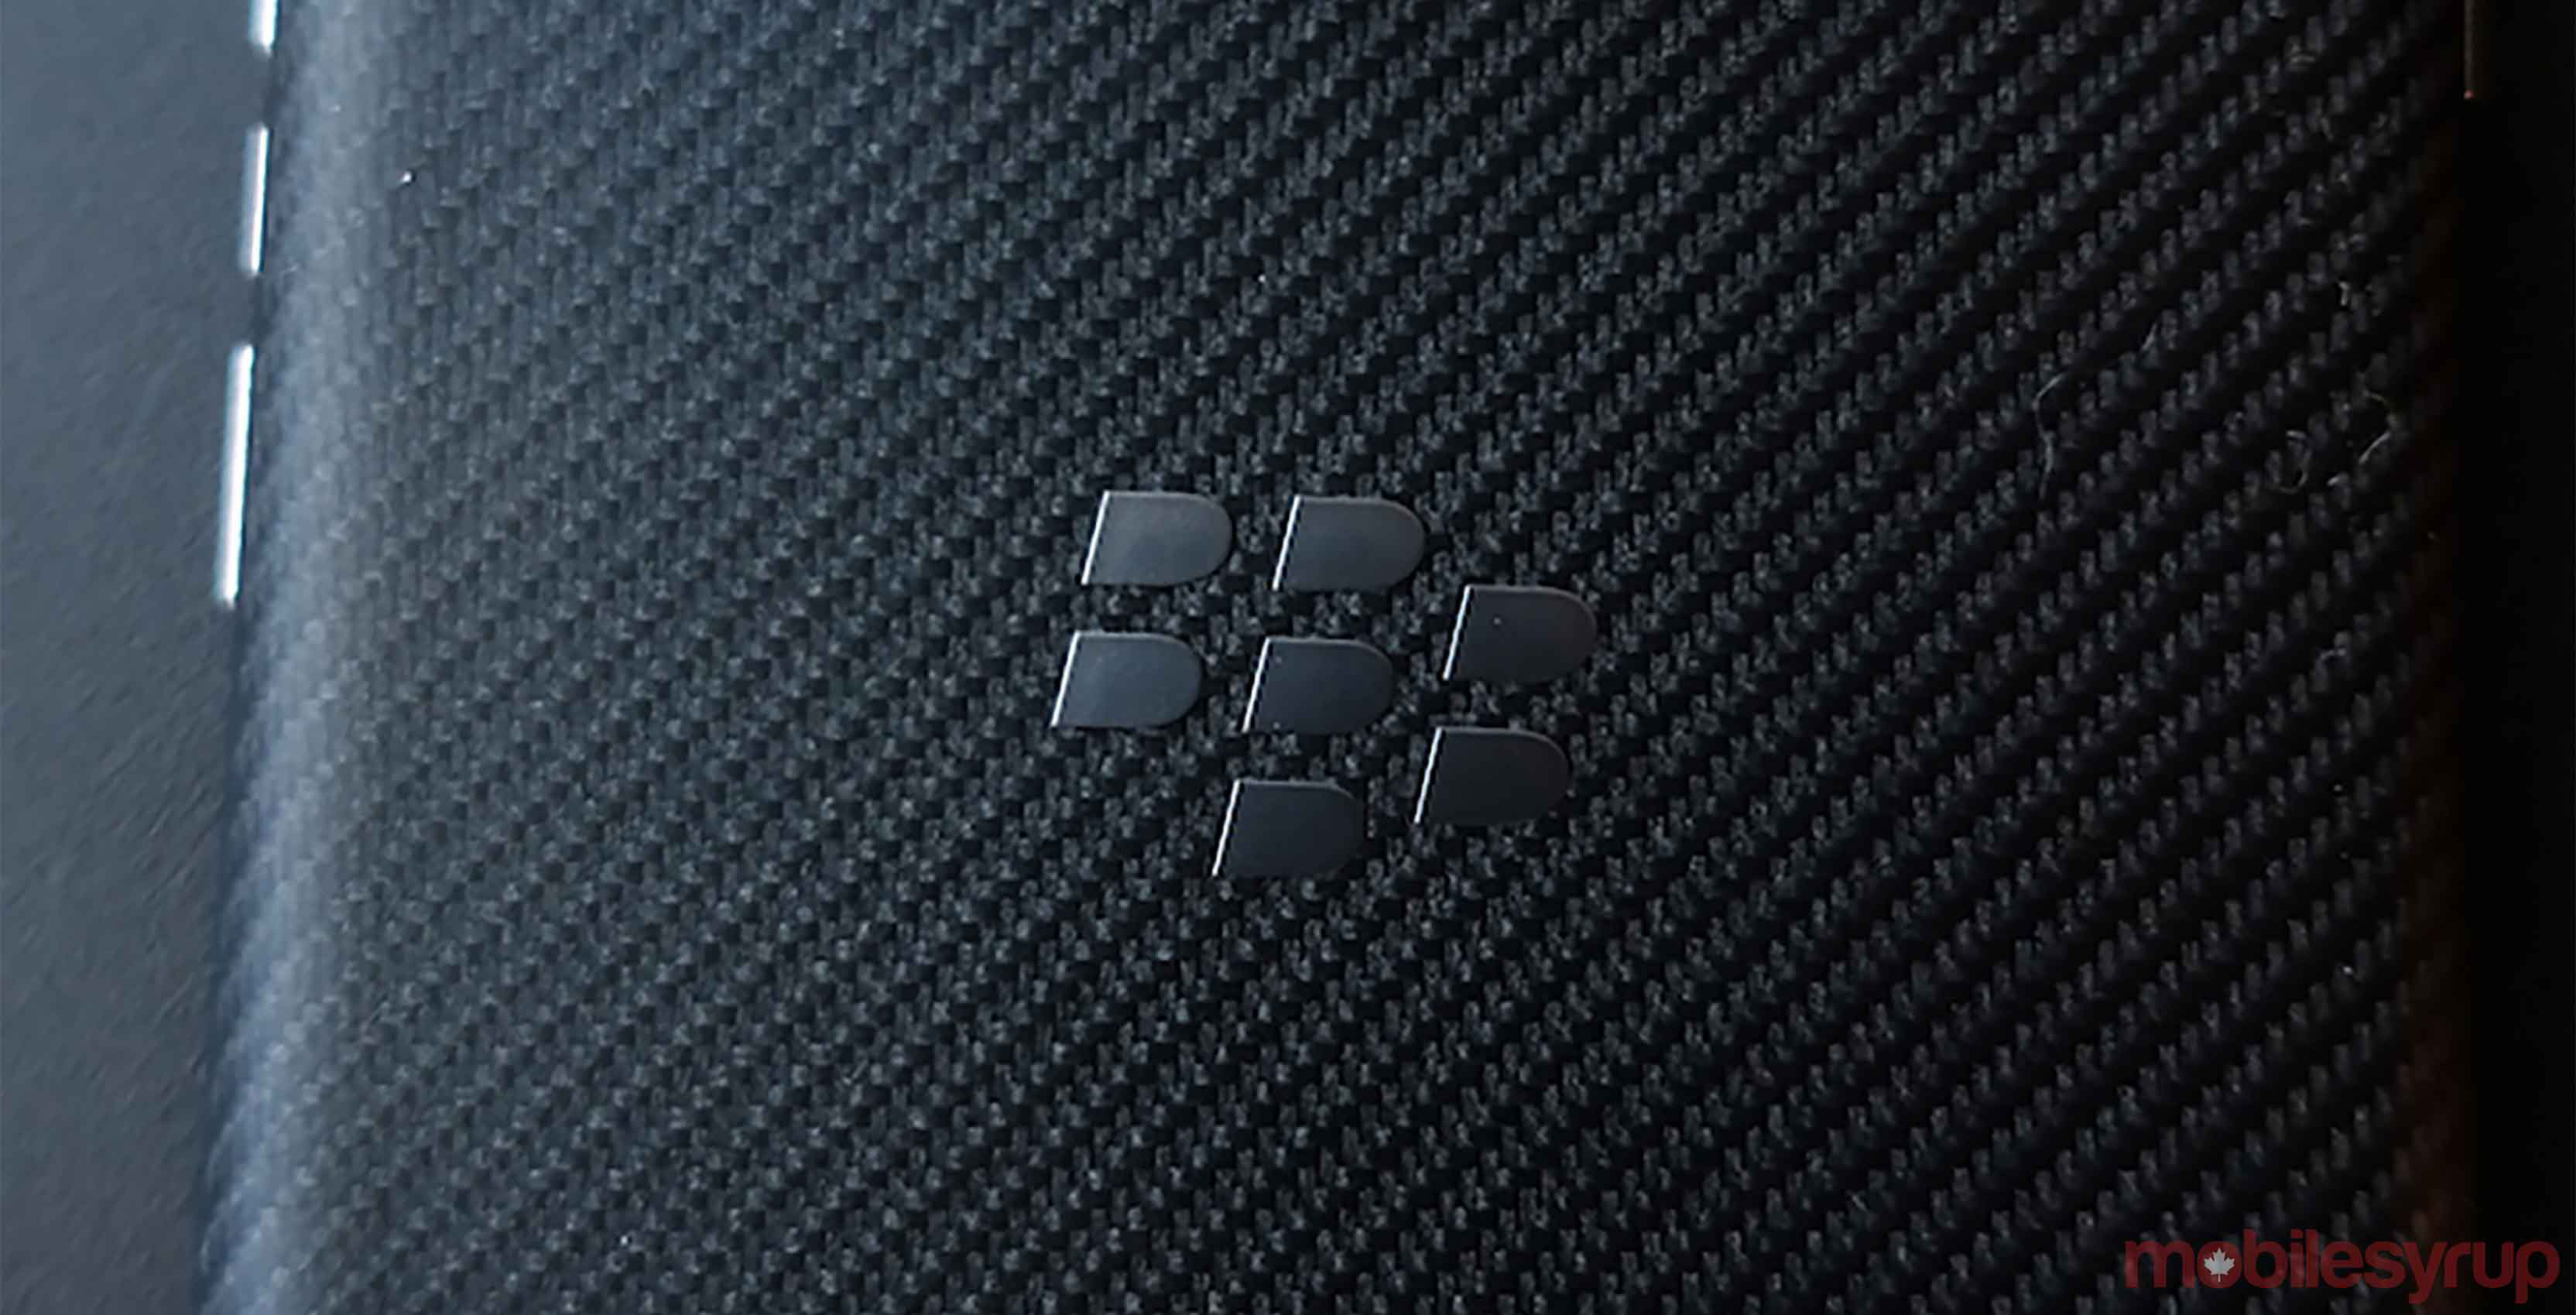 The first water-resistant BlackBerry phone is coming this October, sans keyboard